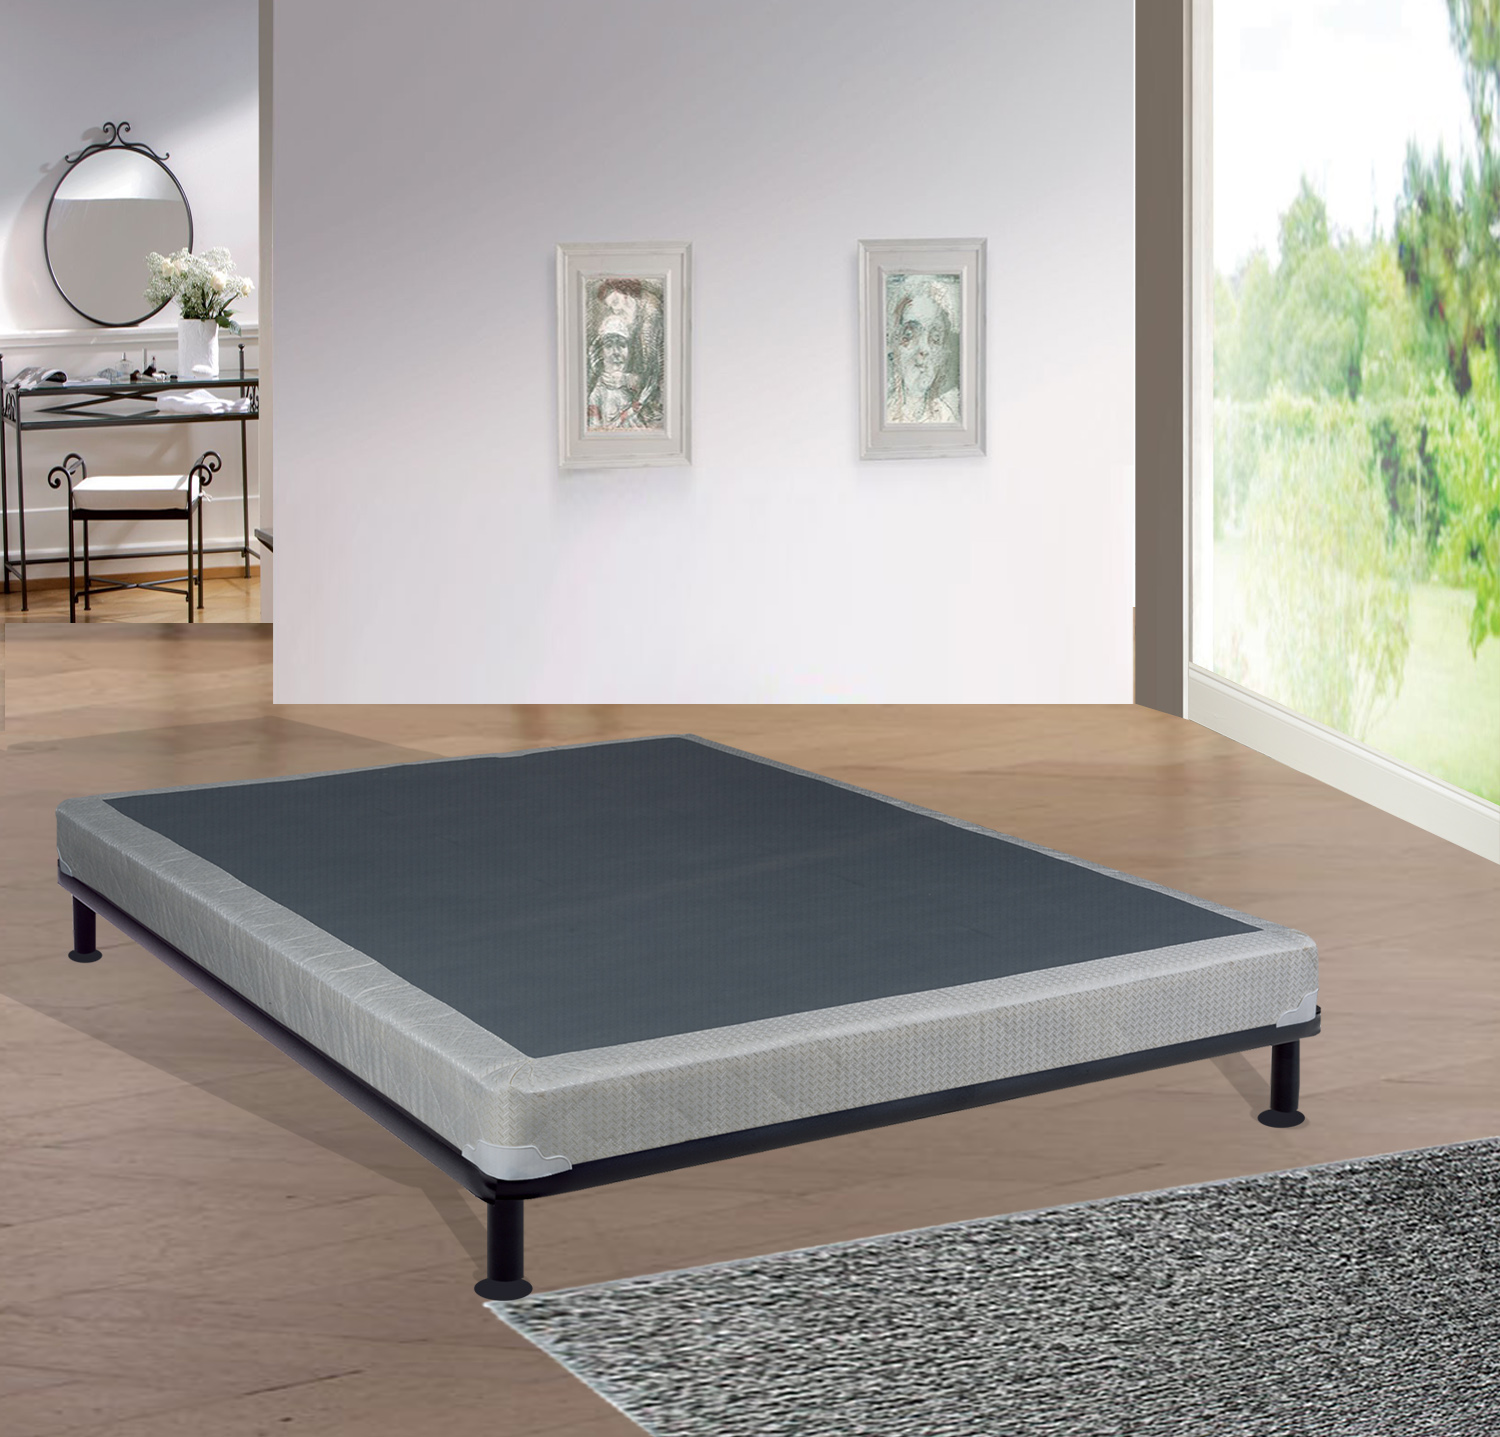 """WAYTON, Fully Assembled Long Lasting 4-Inch Box Spring for Mattress, Twin Size 74"""" x 38"""""""